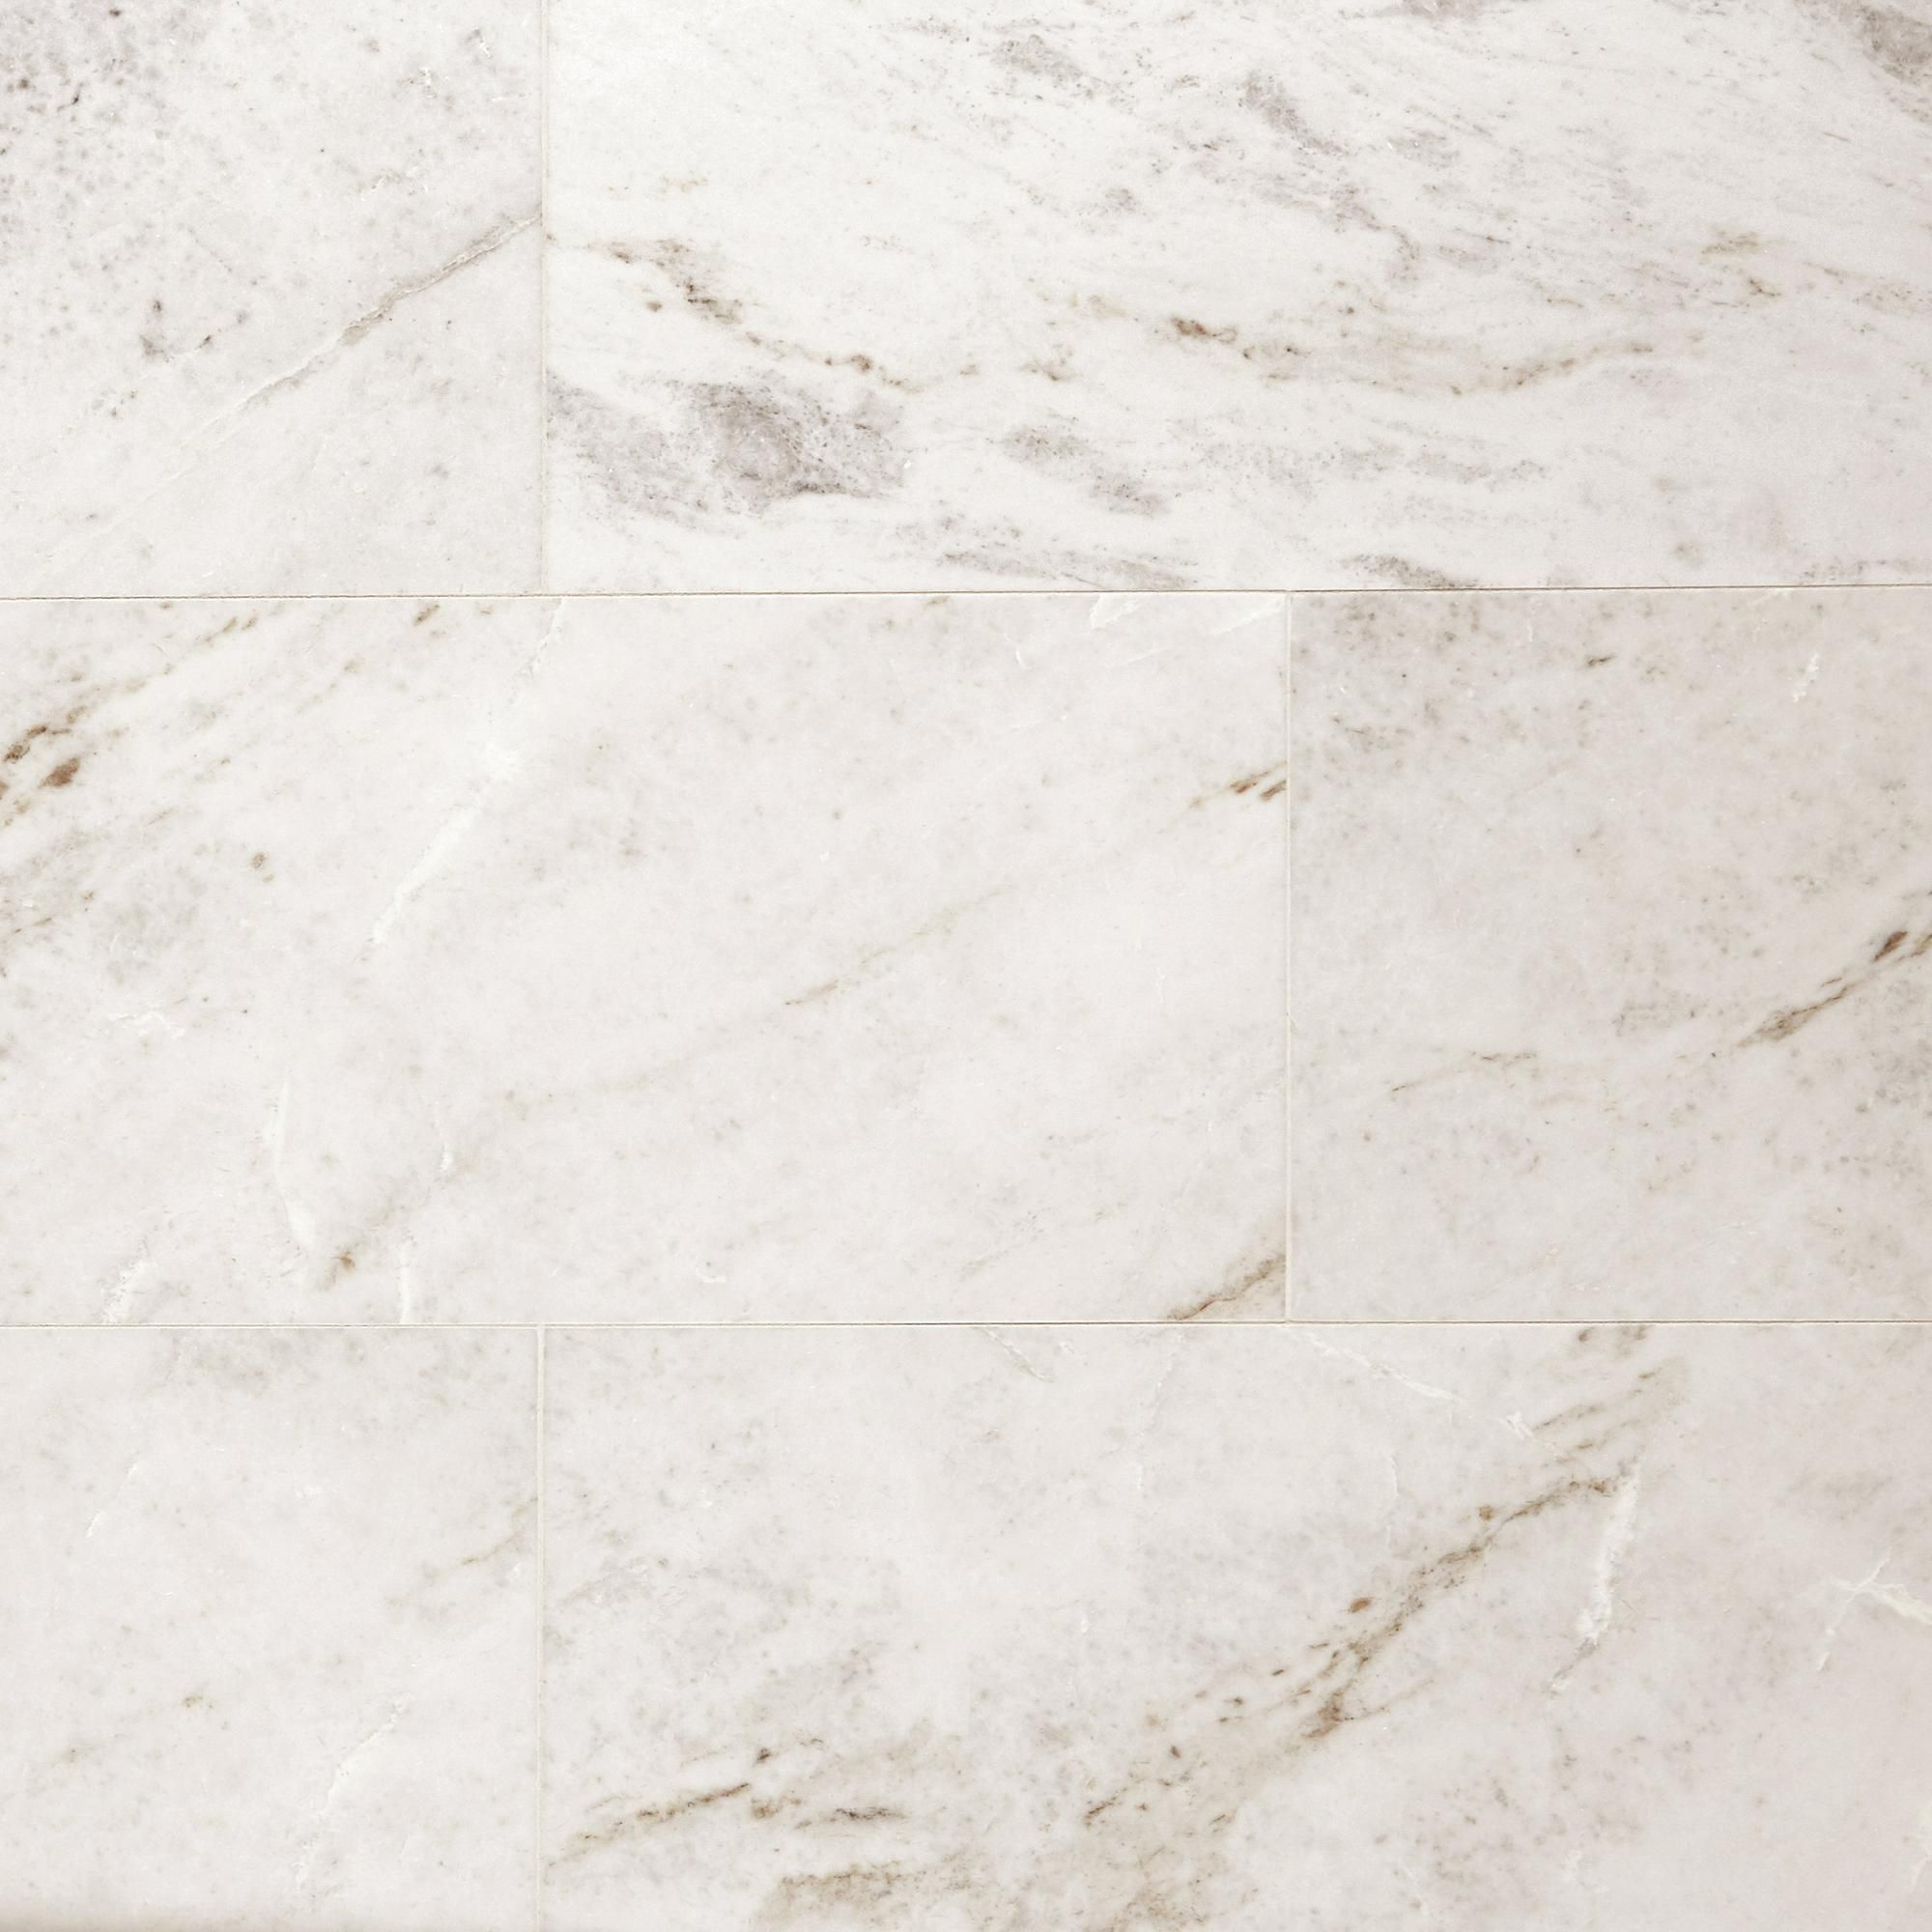 Bianco Orion Polished Marble Tile Floor Decor Polished Marble Tiles White Marble Tiles Floor Decor